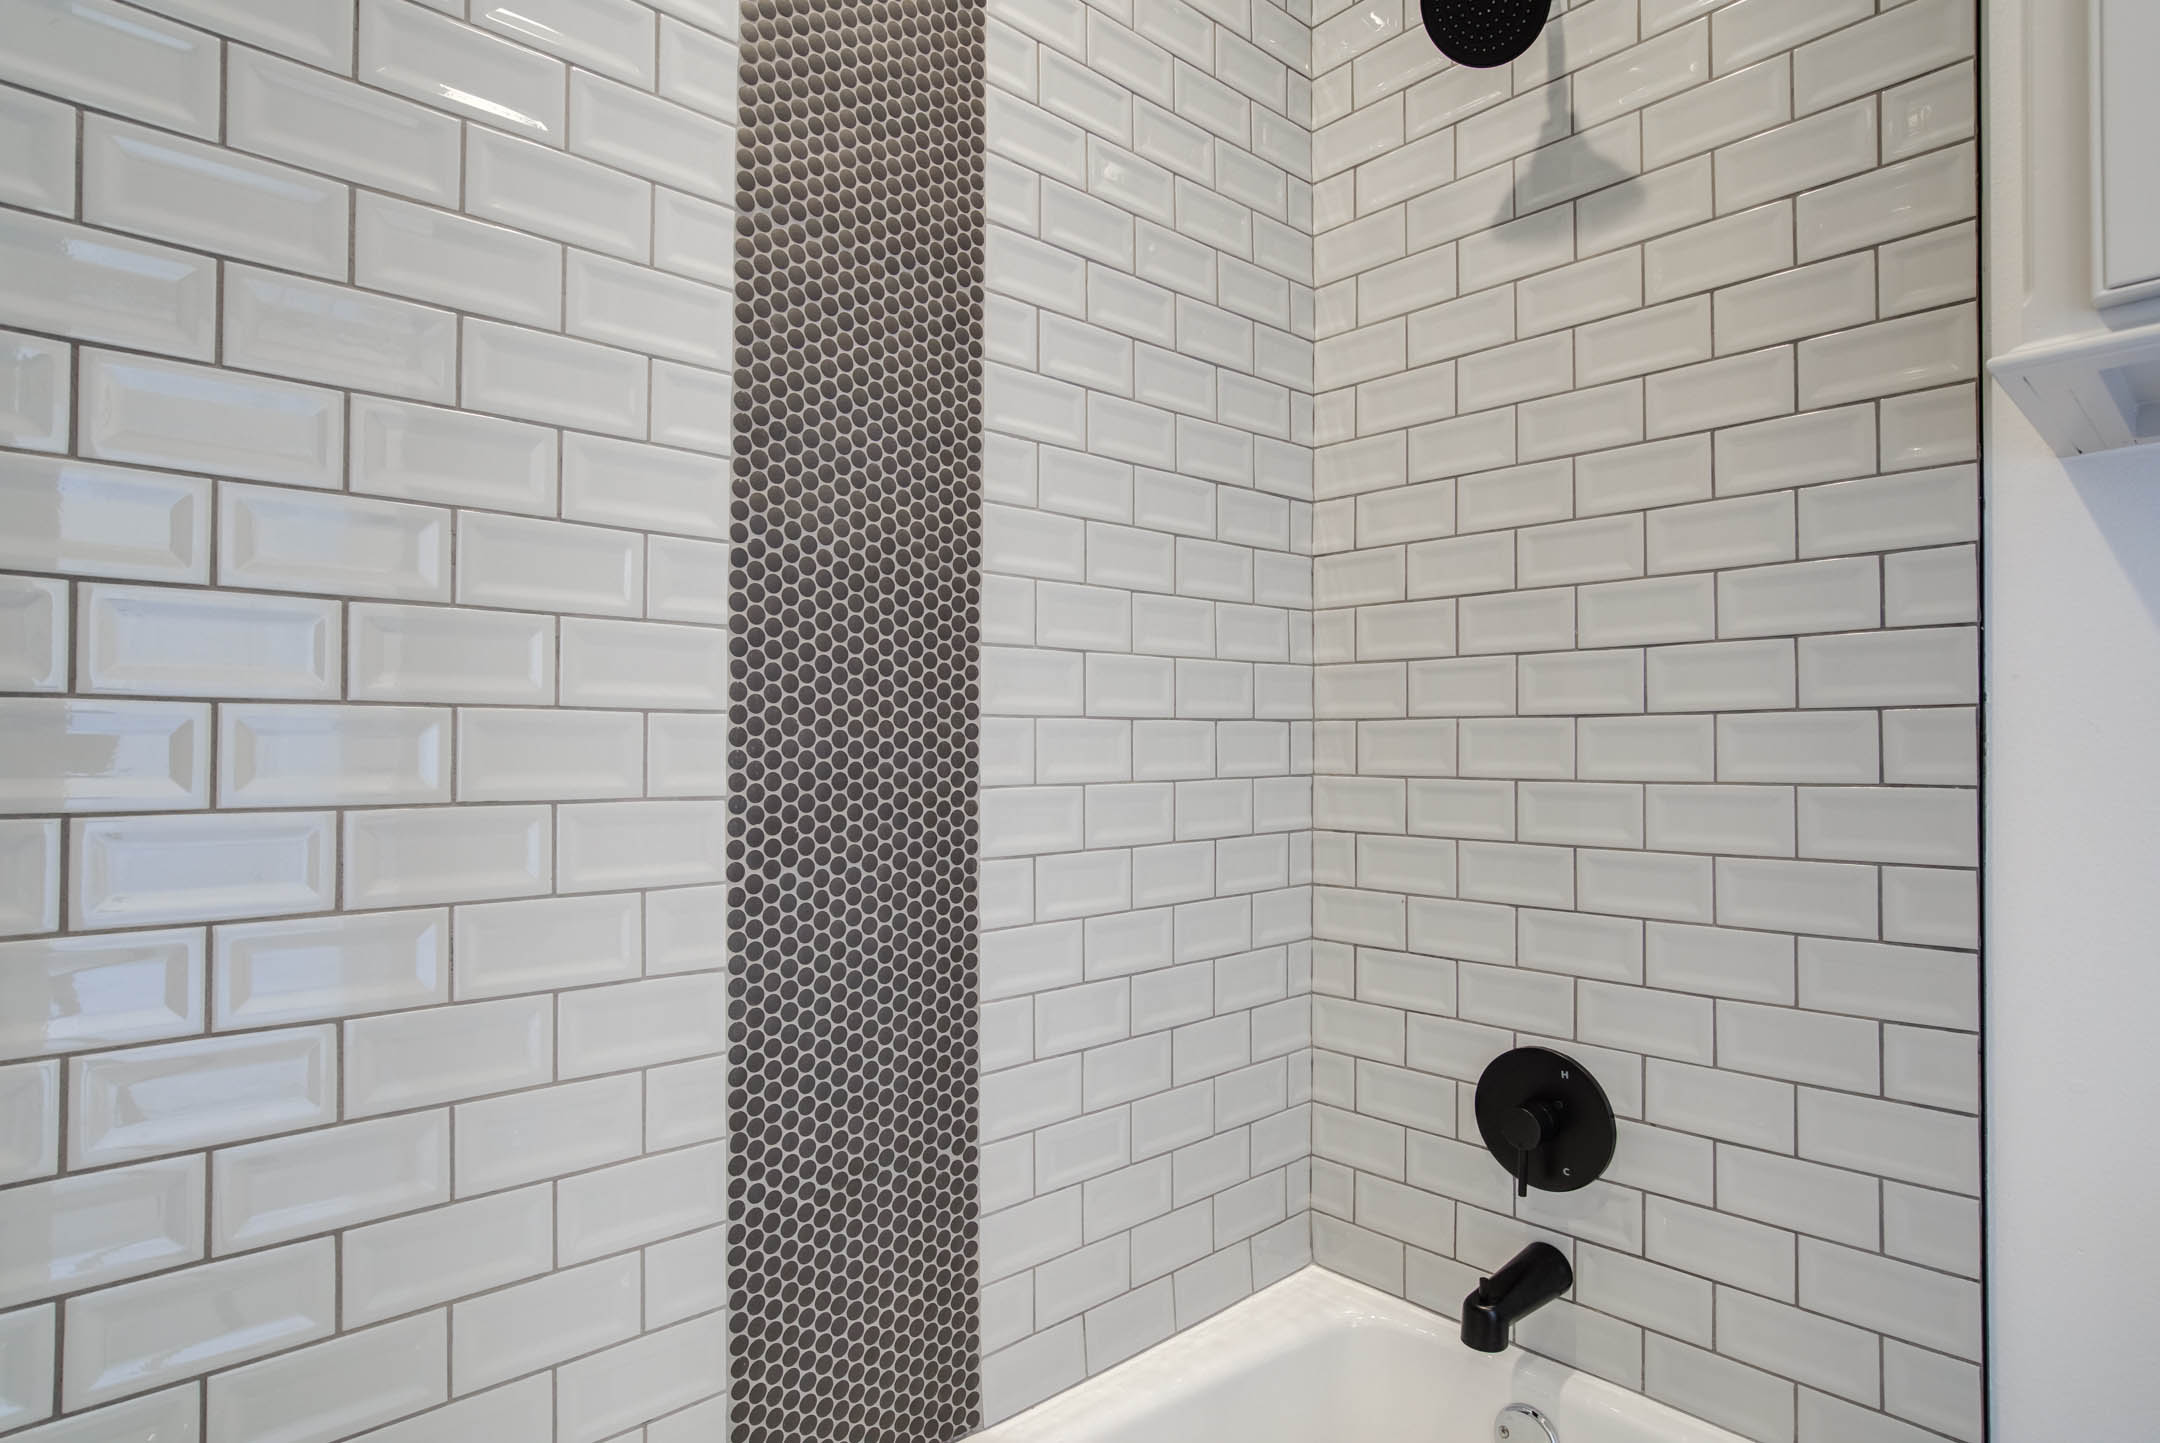 Detail of shower tile in master bath in new home for sale near Lubbock, Texas.